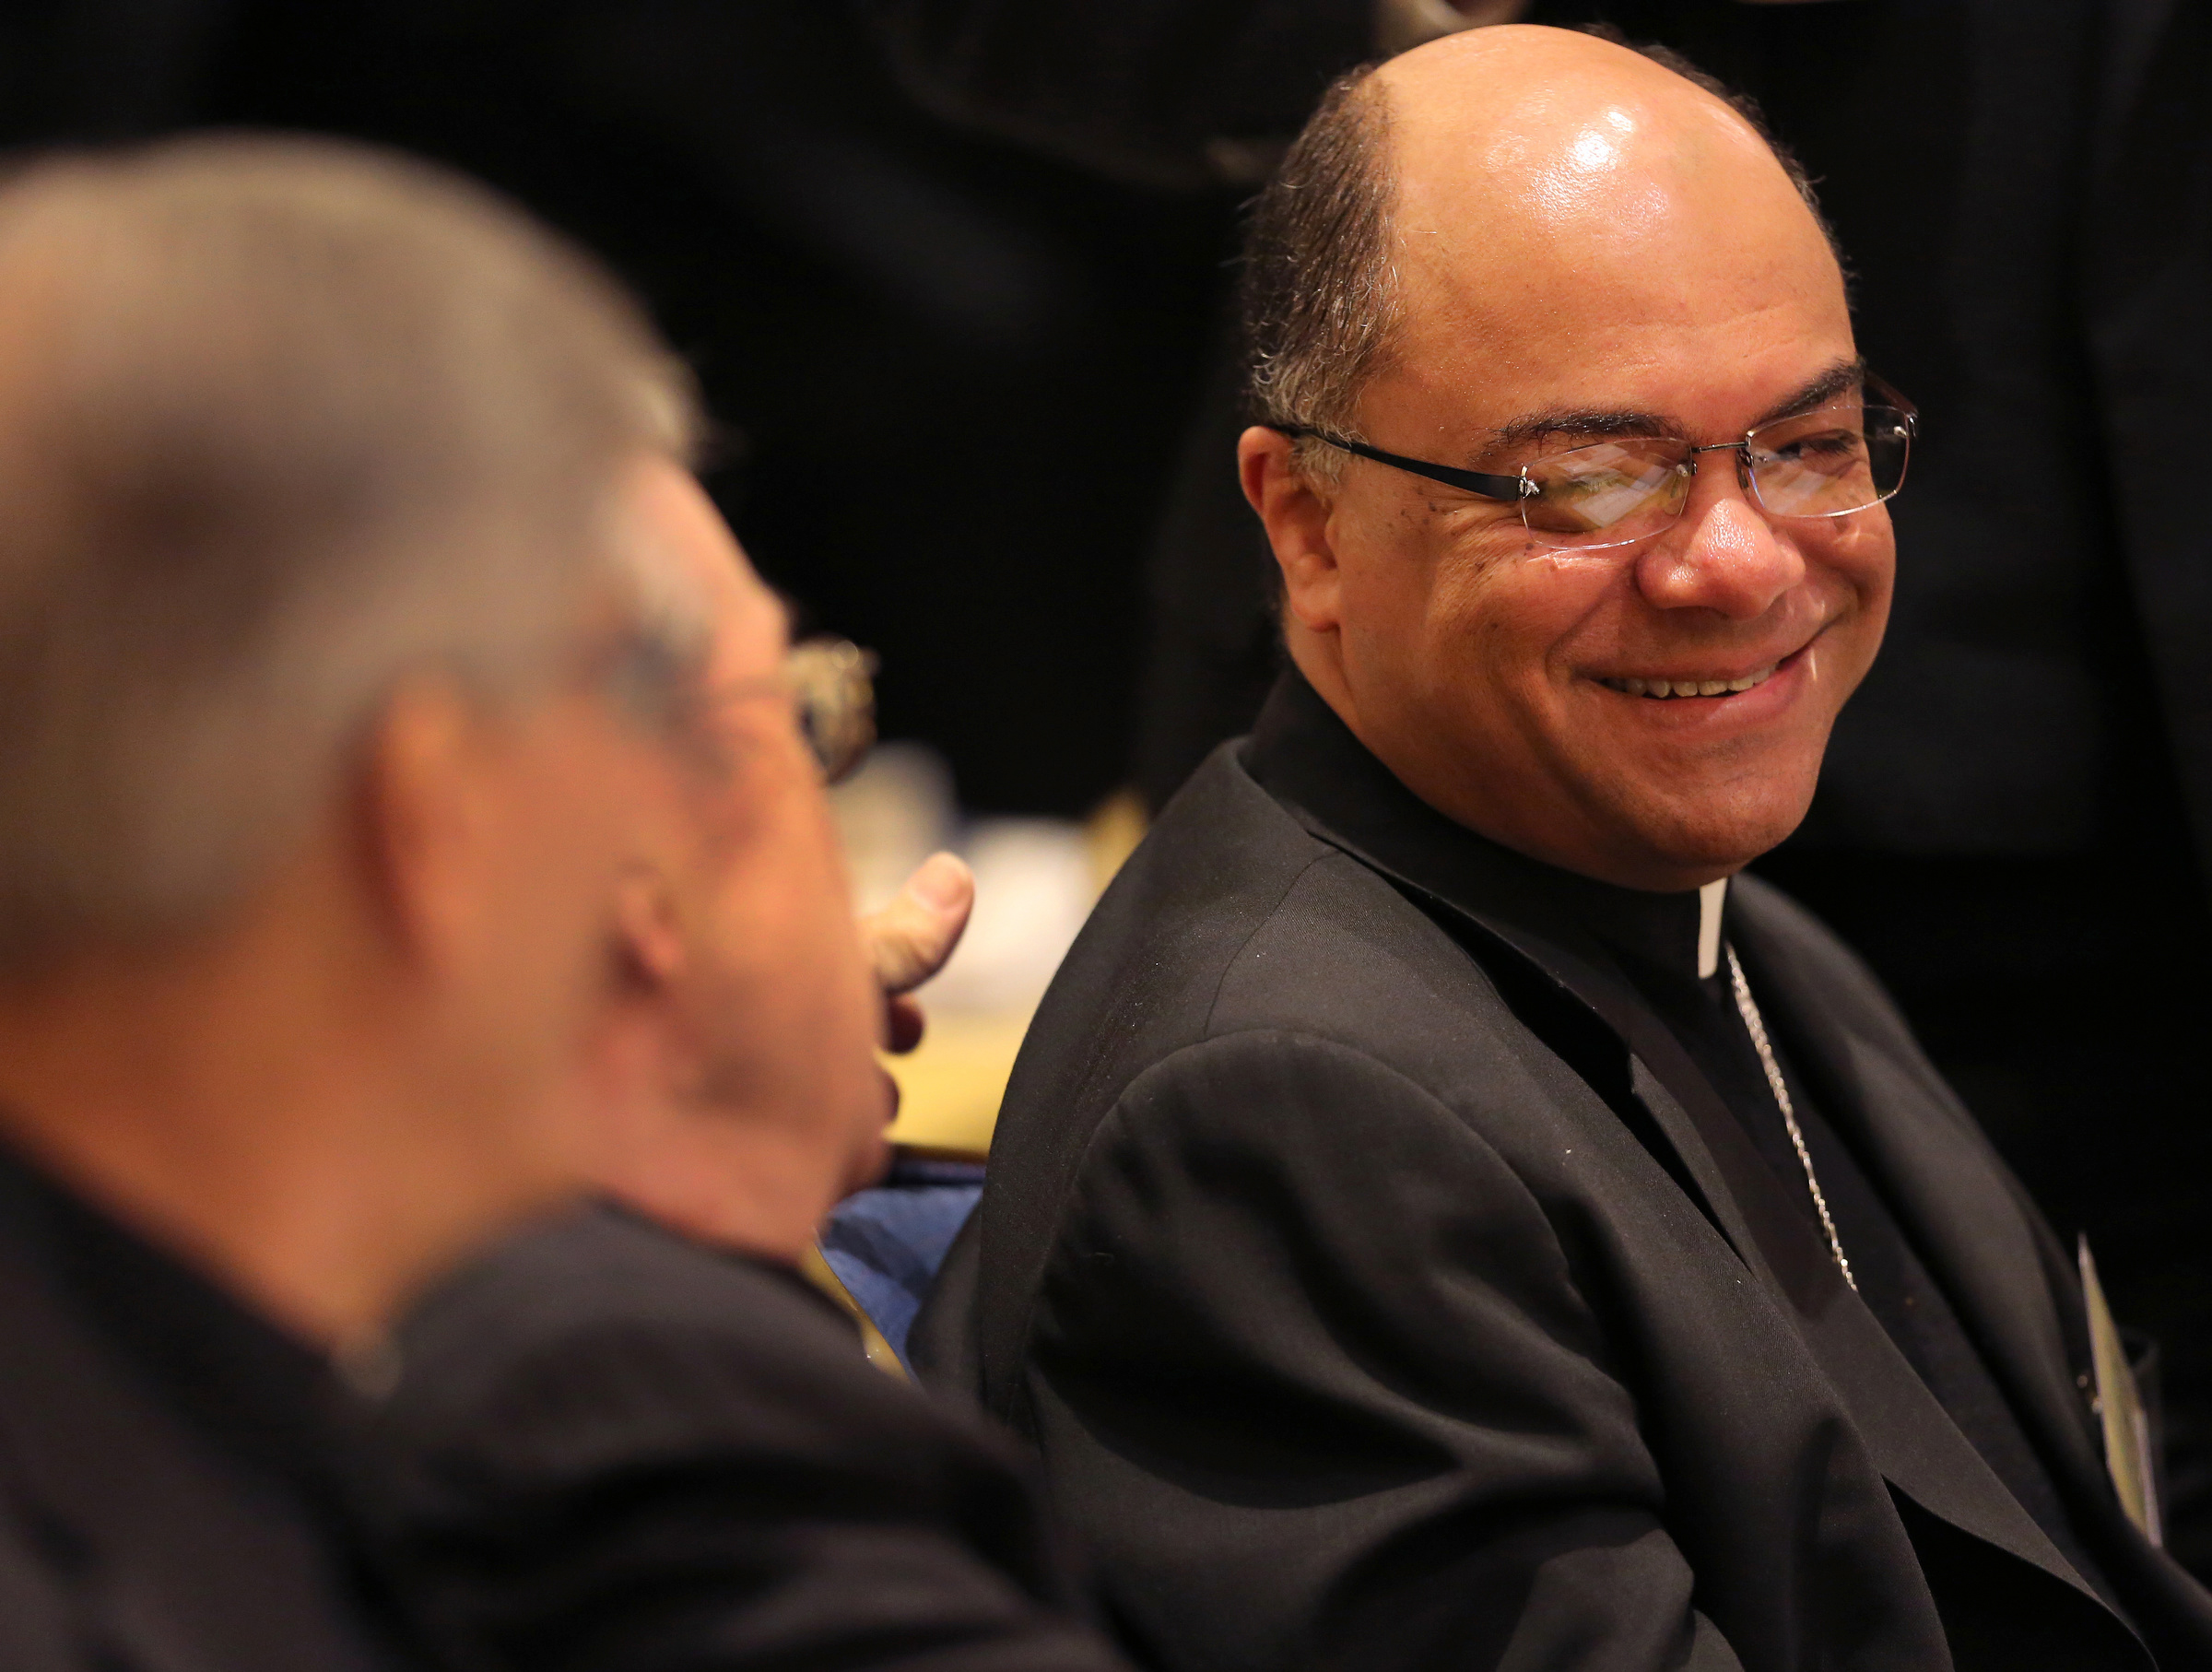 U S  bishops adopt new anti-racism letter, first in almost